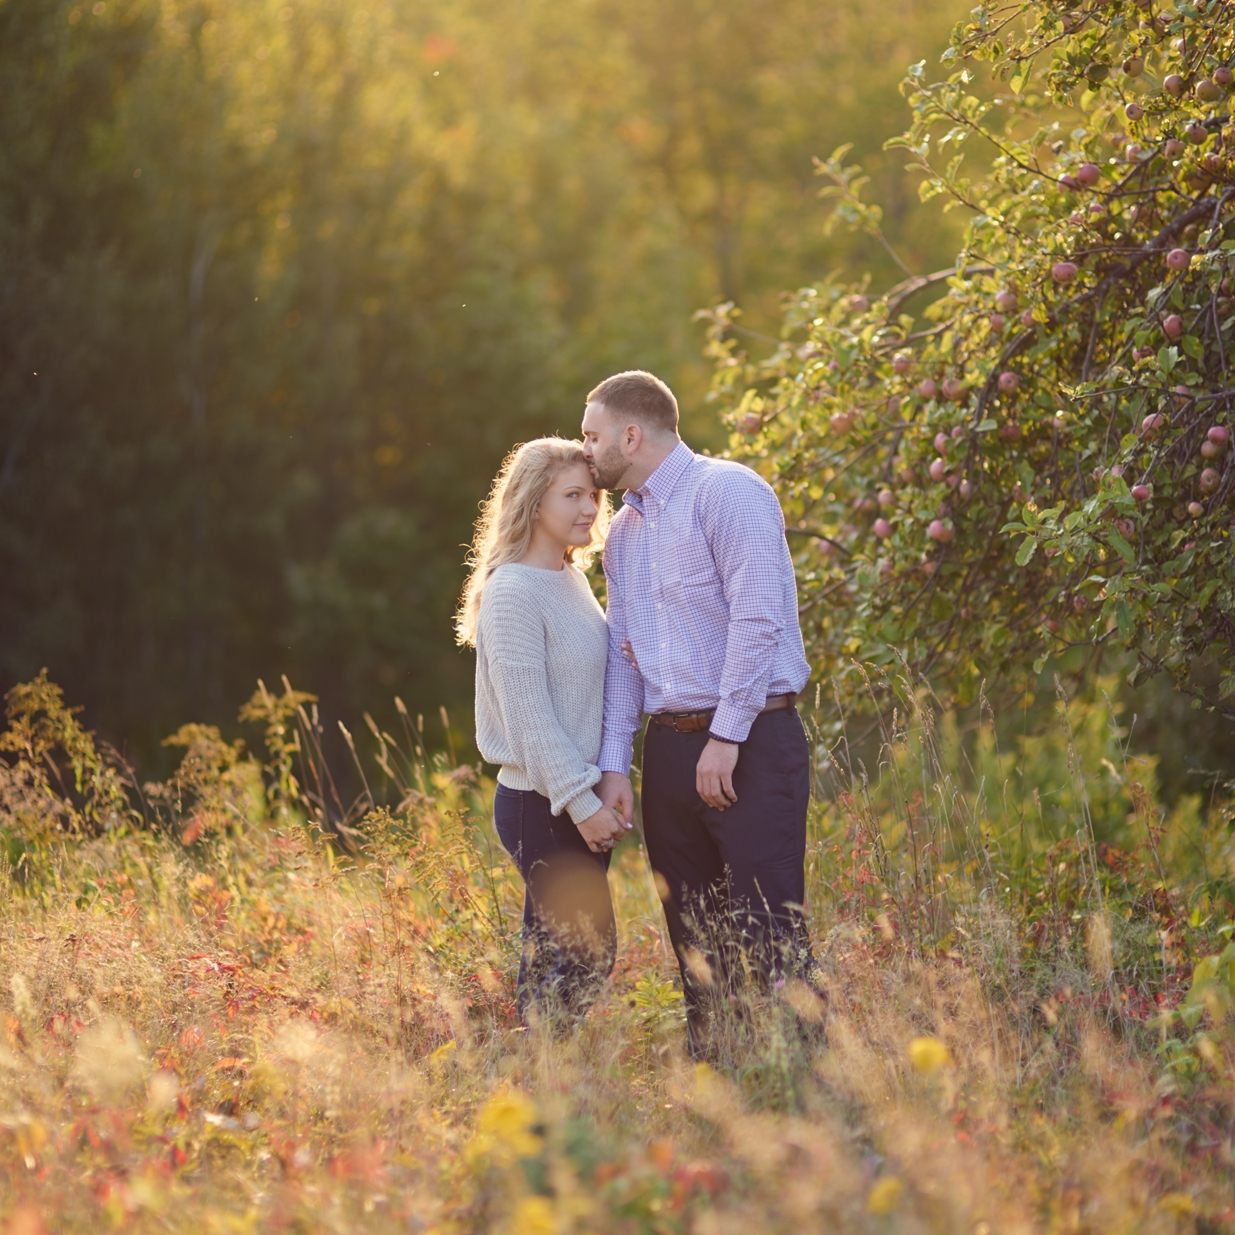 Anesa and Mahlik's Fall sunset engagement session in Meredith, NH on Lake Winnipesaukee